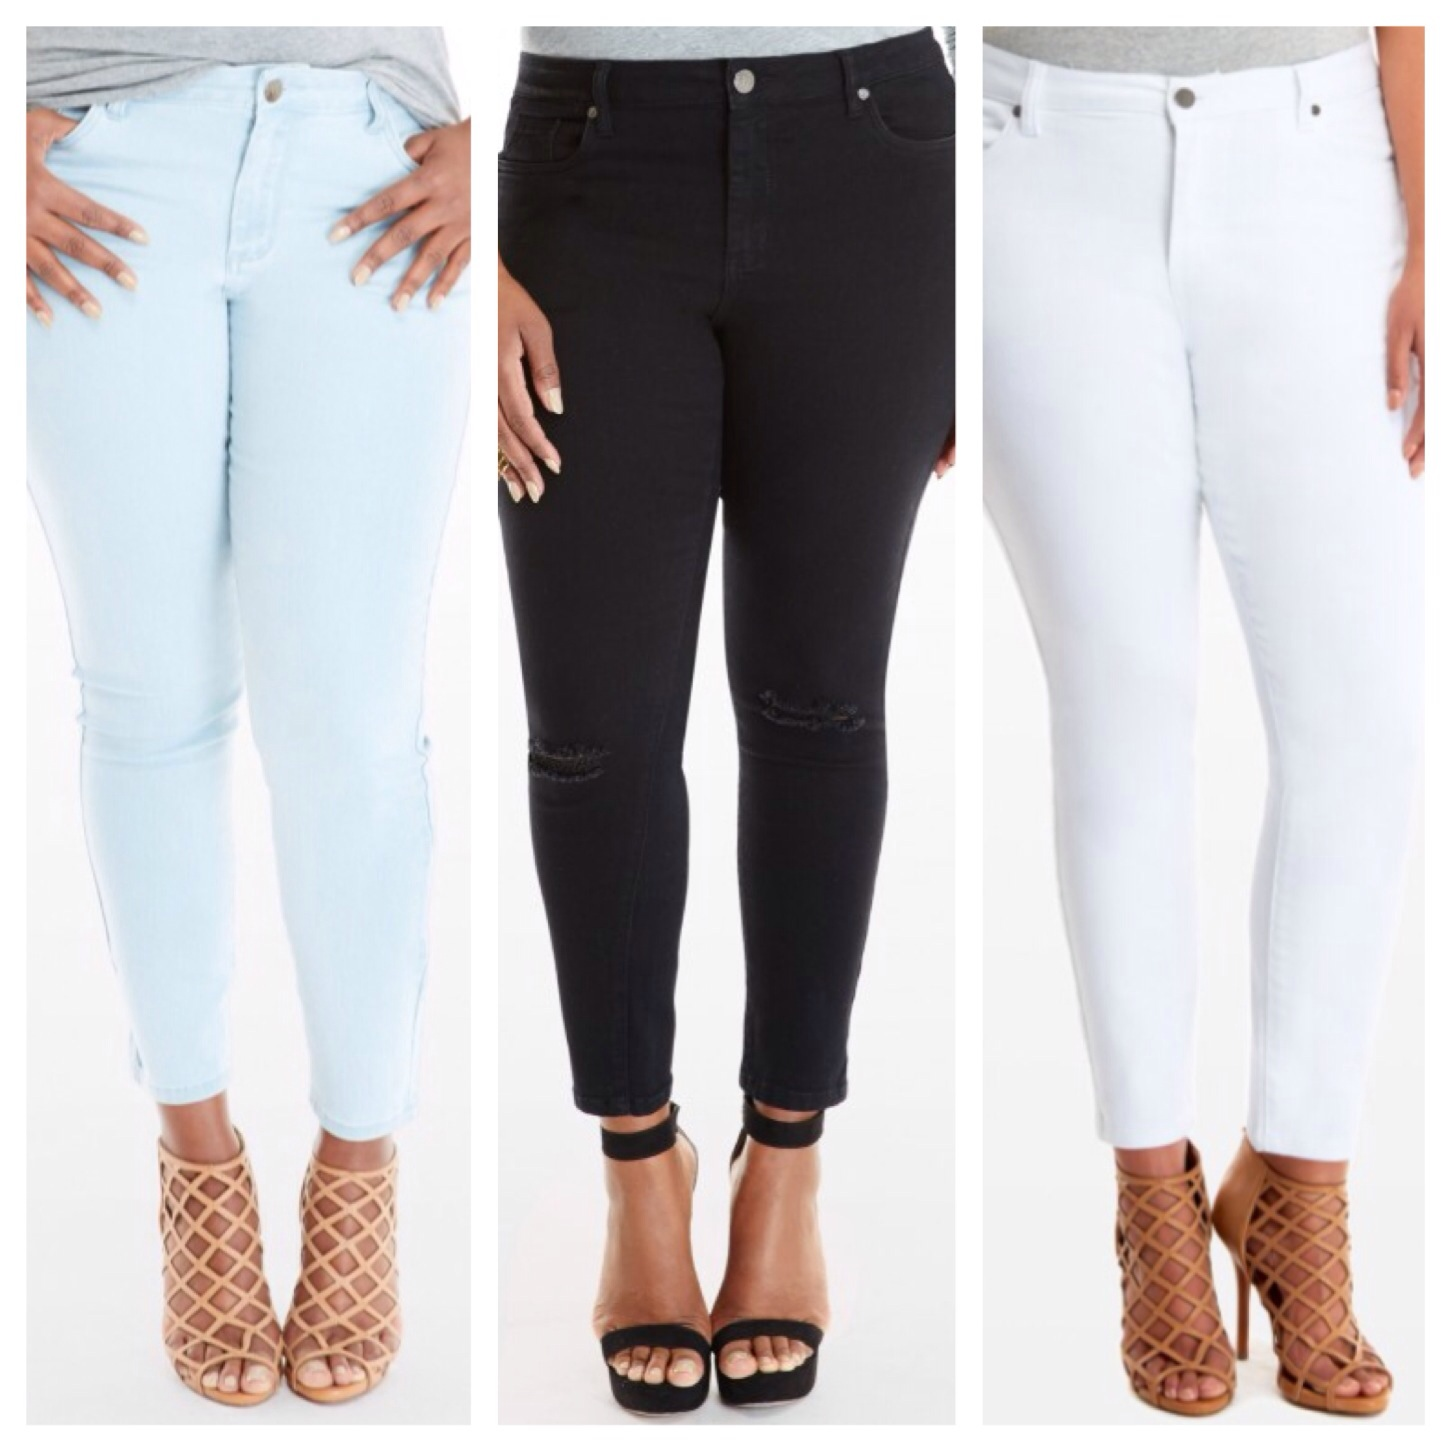 Wardrobe Want: Lydia Ankle Jeans from FTF